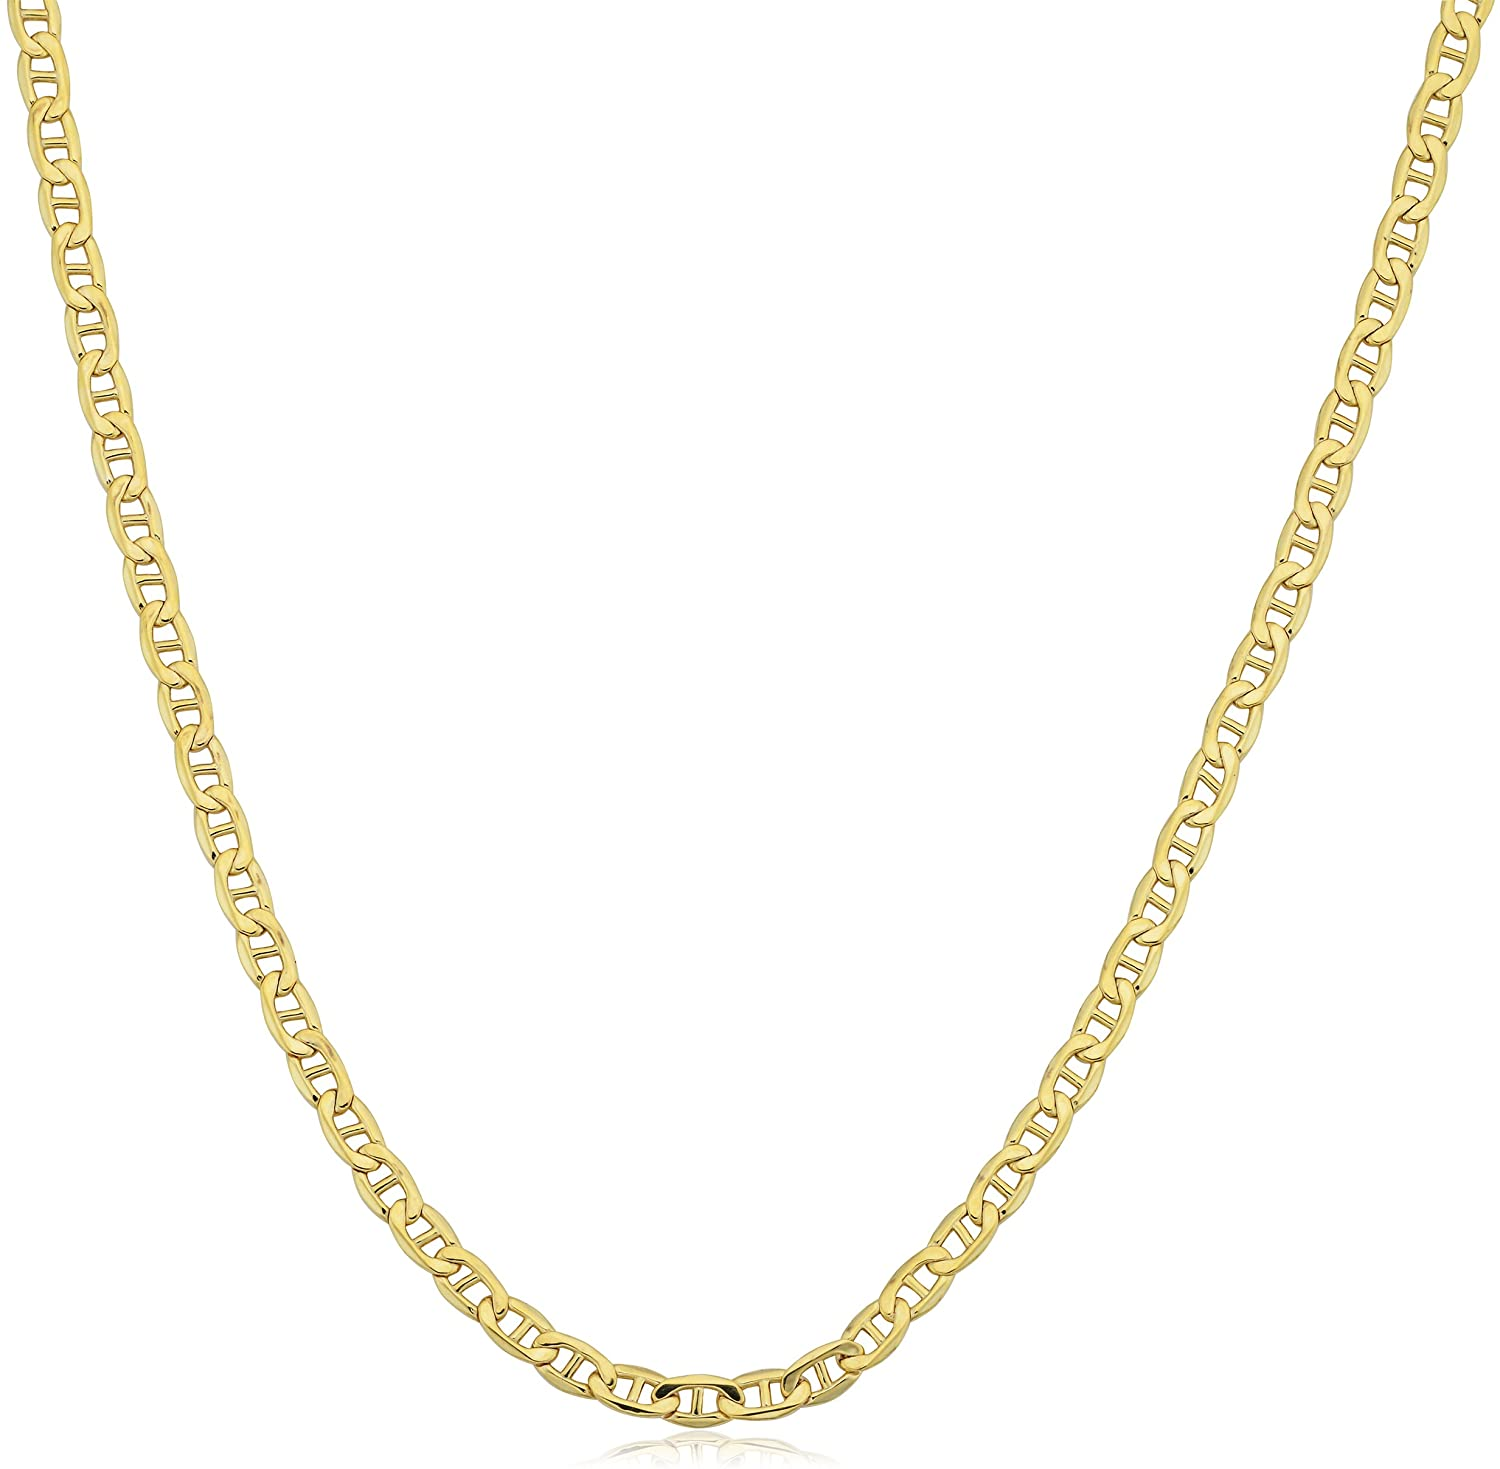 Kooljewelry 10k Yellow Gold 2.3 mm Mariner Link Chain Necklace (16, 18, 20, 22, 24, 30 or 36 inch)